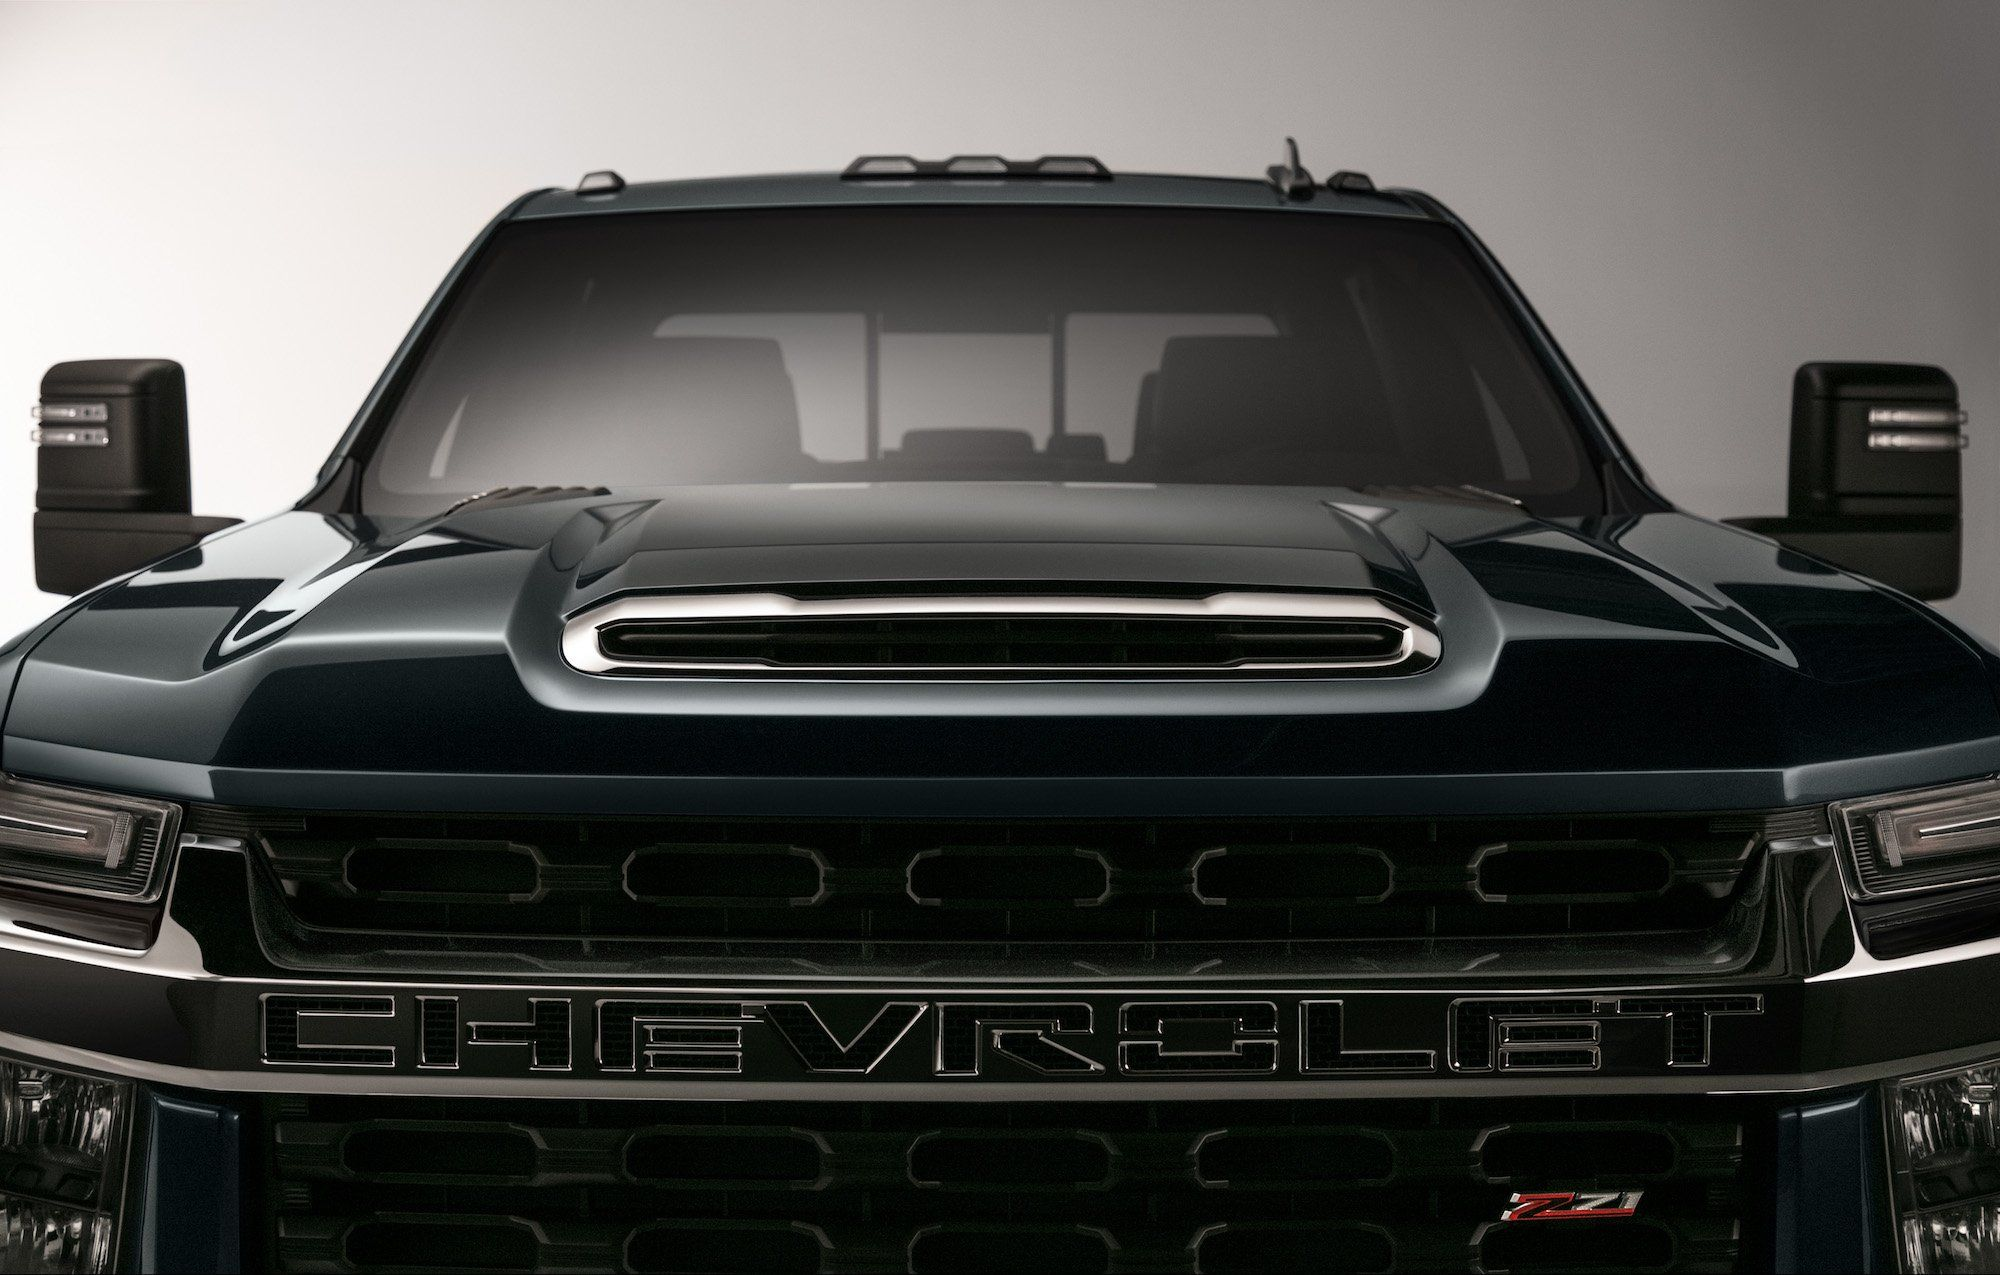 Chevy launching new pickup trucks to compete with Ford